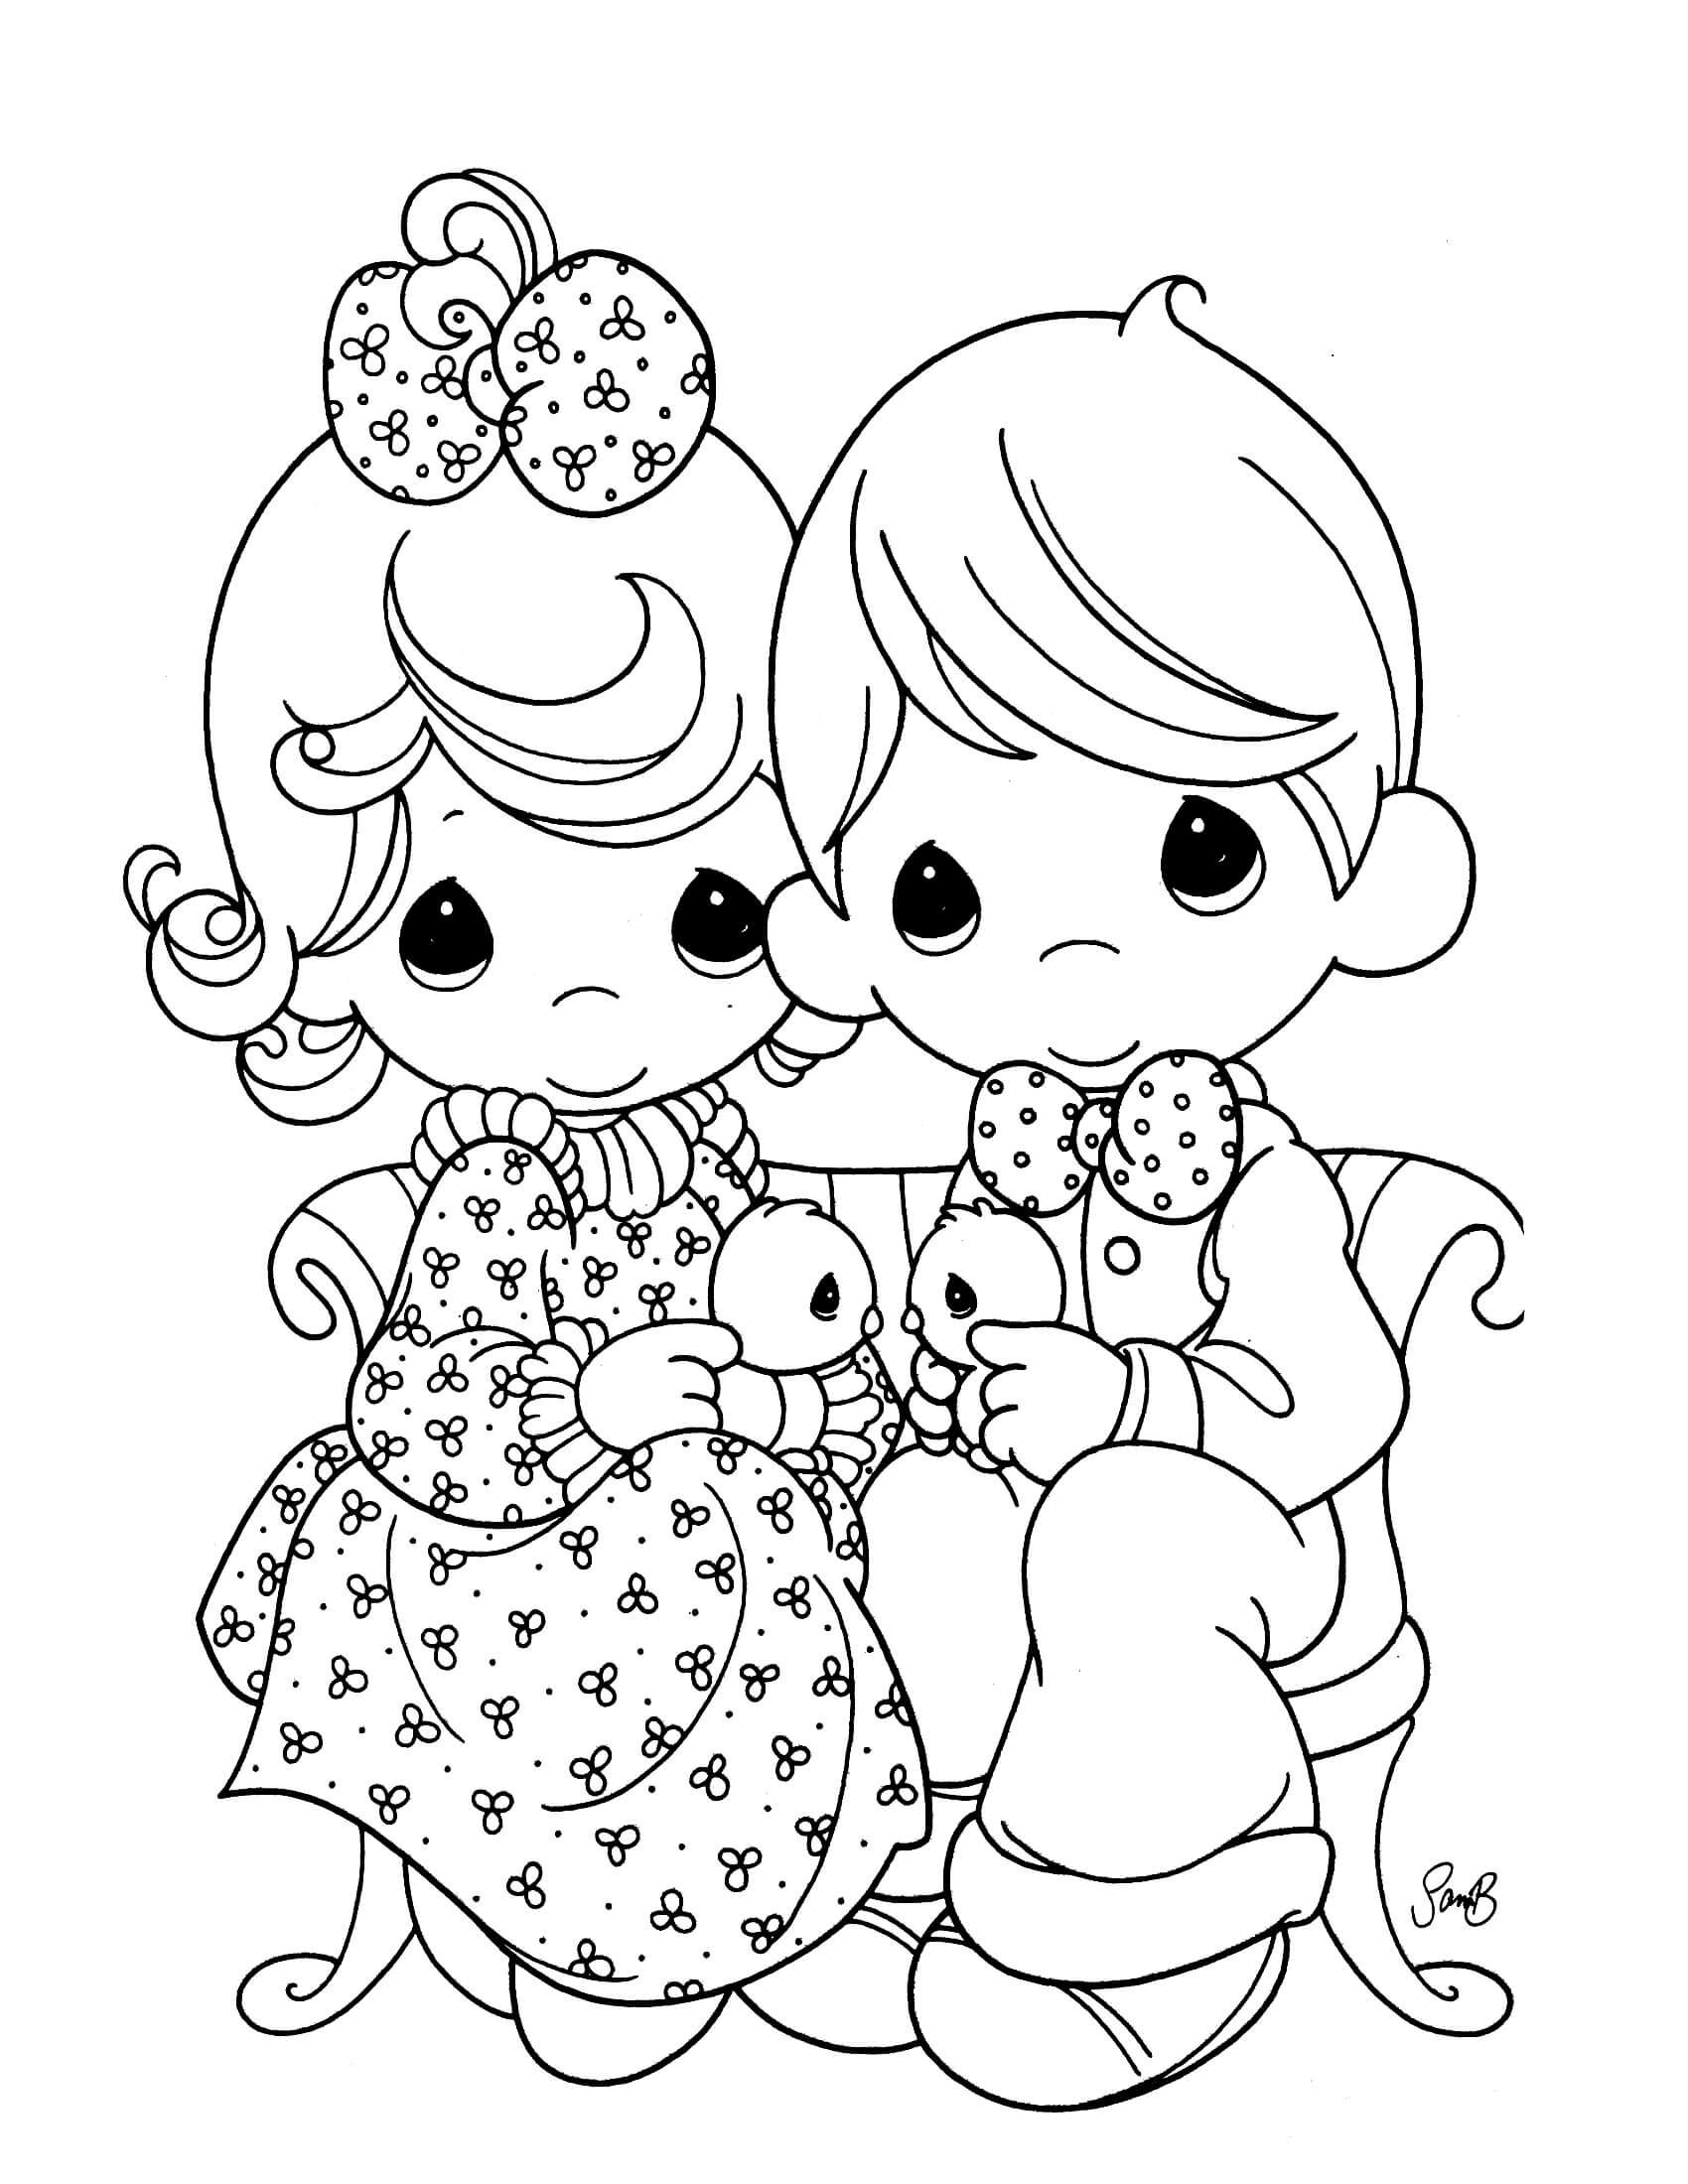 Precious Moments Coloring Page Precious Moments Coloring Pages Baby Coloring Pages Disney Coloring Pages